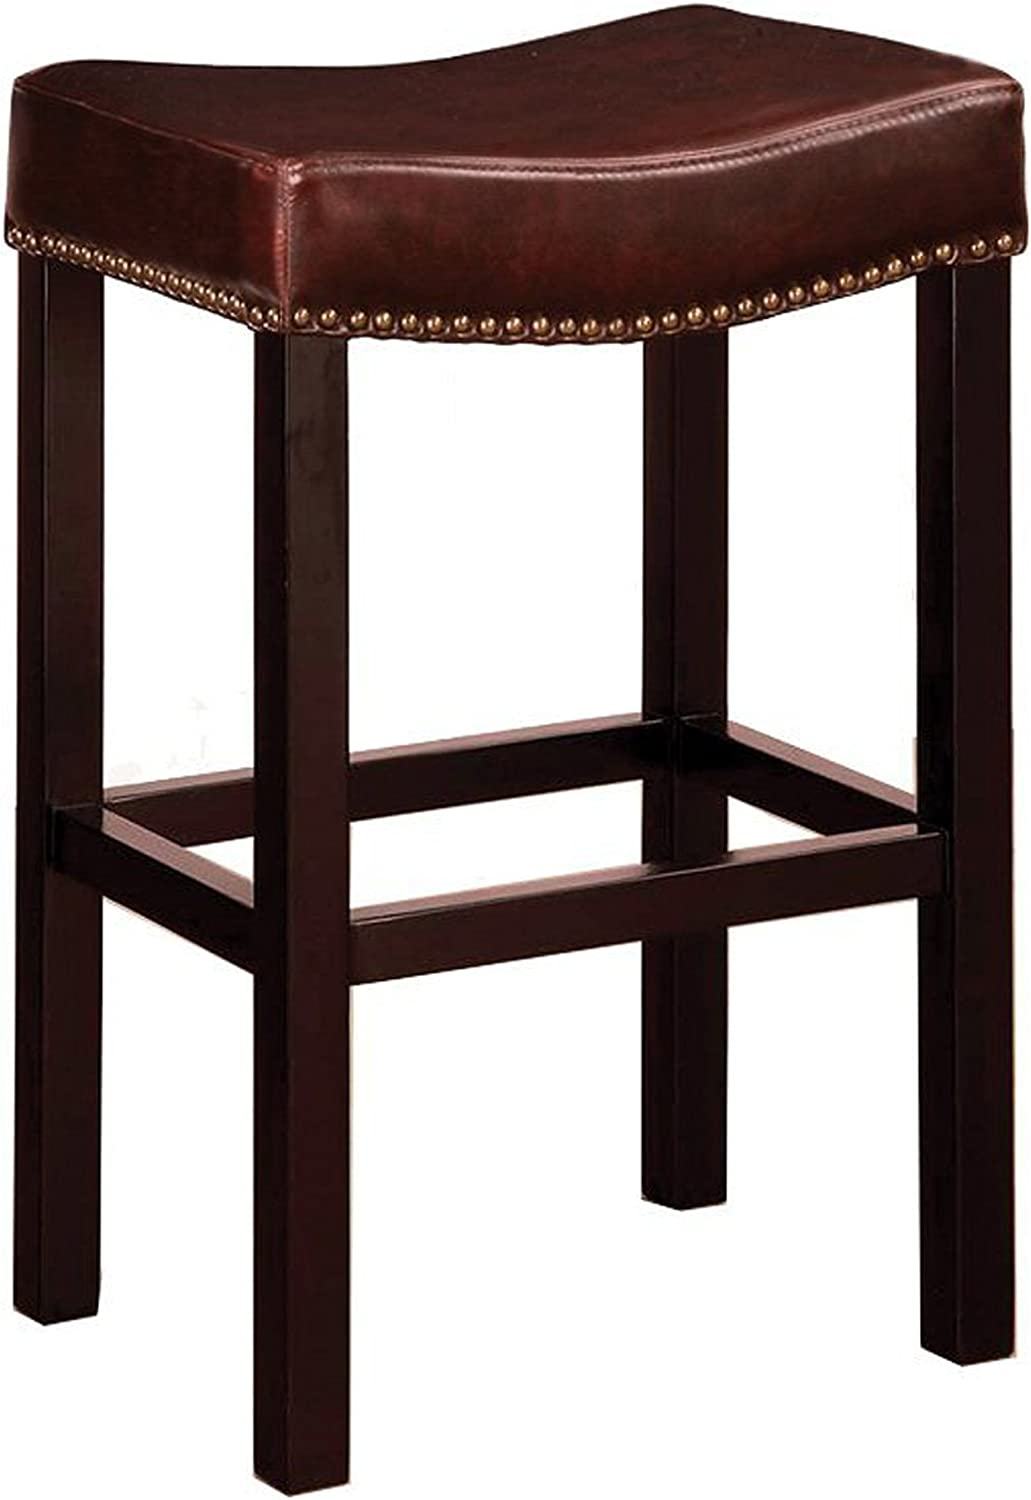 Armen Living Leather Barstool with Antique Nail Trim Brown Leather